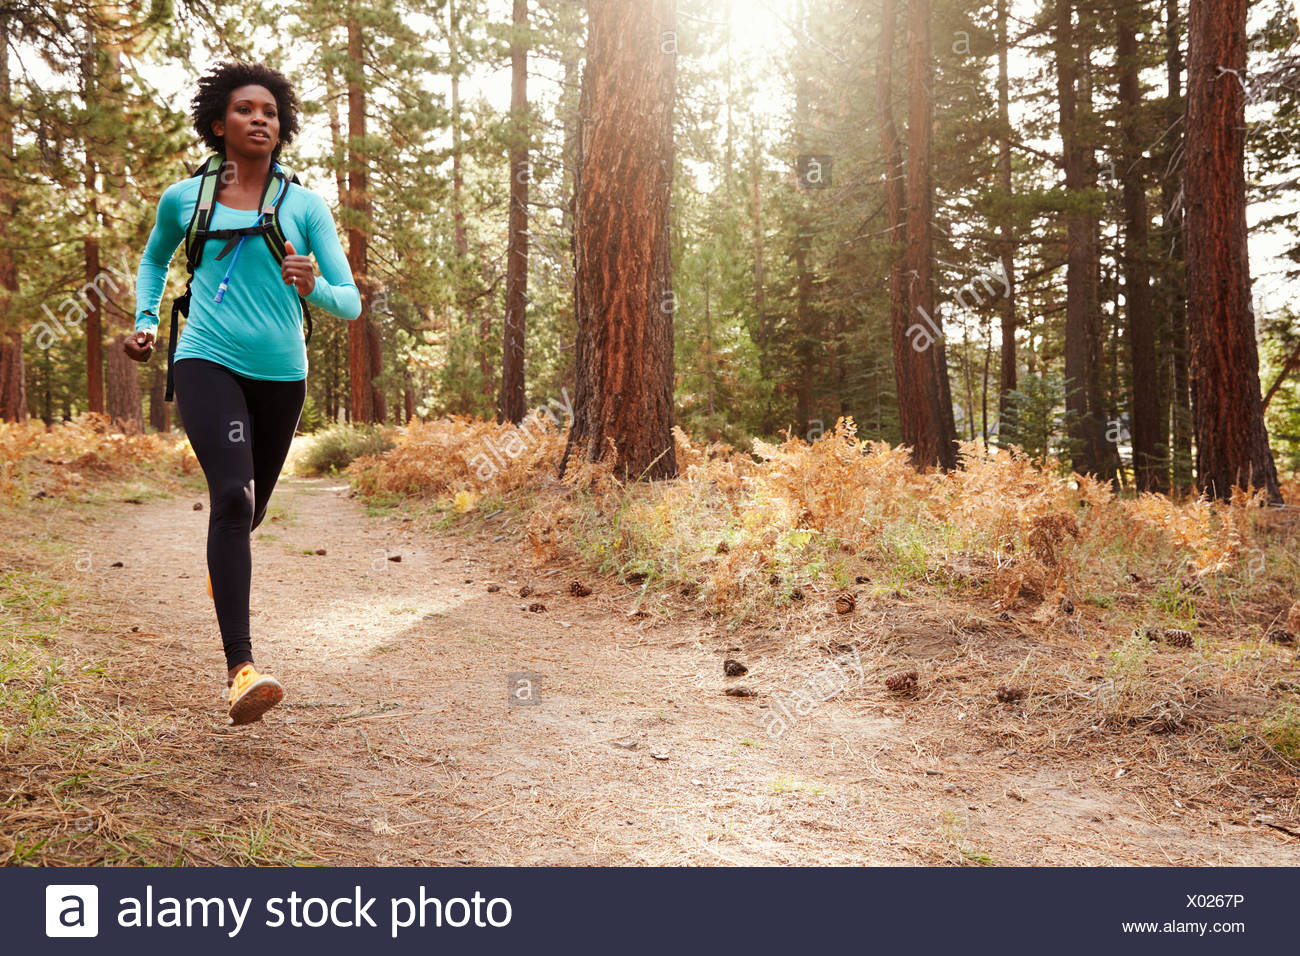 African American ethnicity woman running in a forest - Stock Image